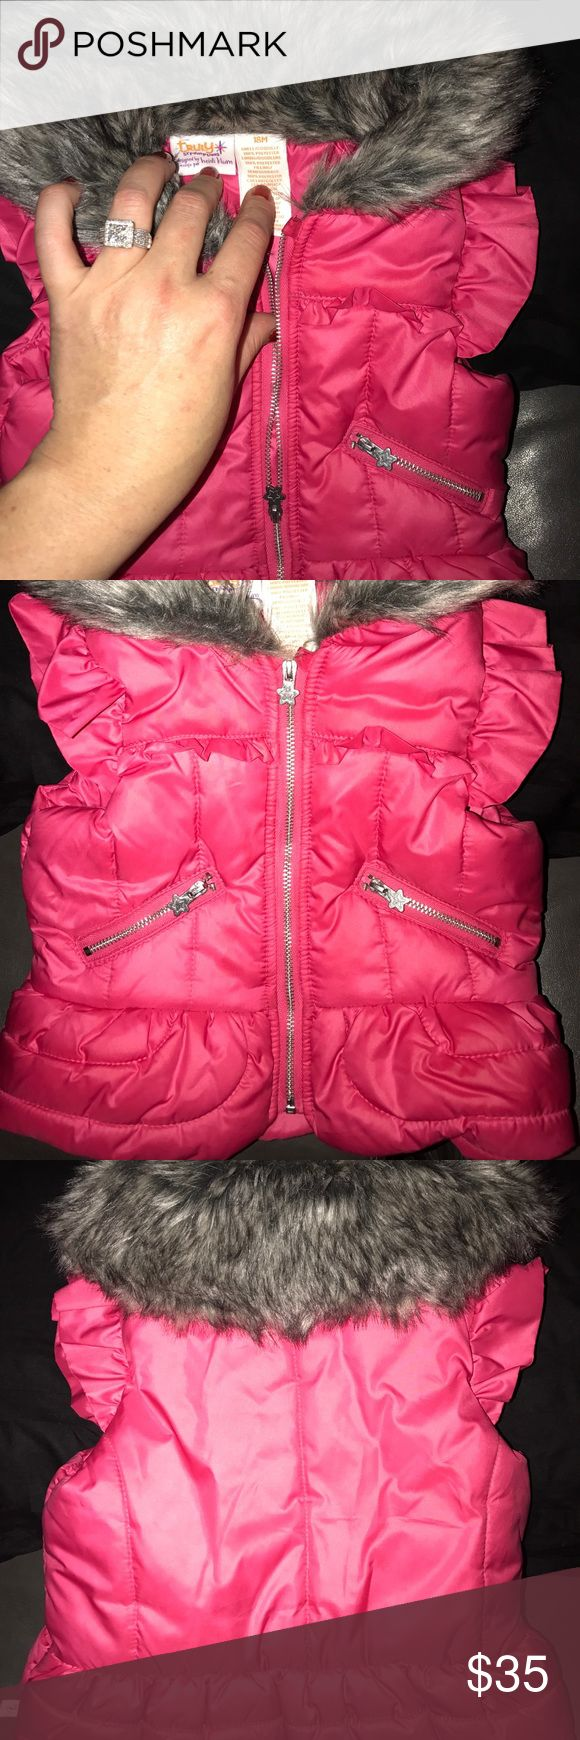 Totally Scrumptious by heidi klum vest Sz 18M Totally Scrumptious by heidi klum vest. Size 18 Months. In excellent condition. Only worn one time. Pet/smoke free! Heidi Klum Intimates Jackets & Coats Vests